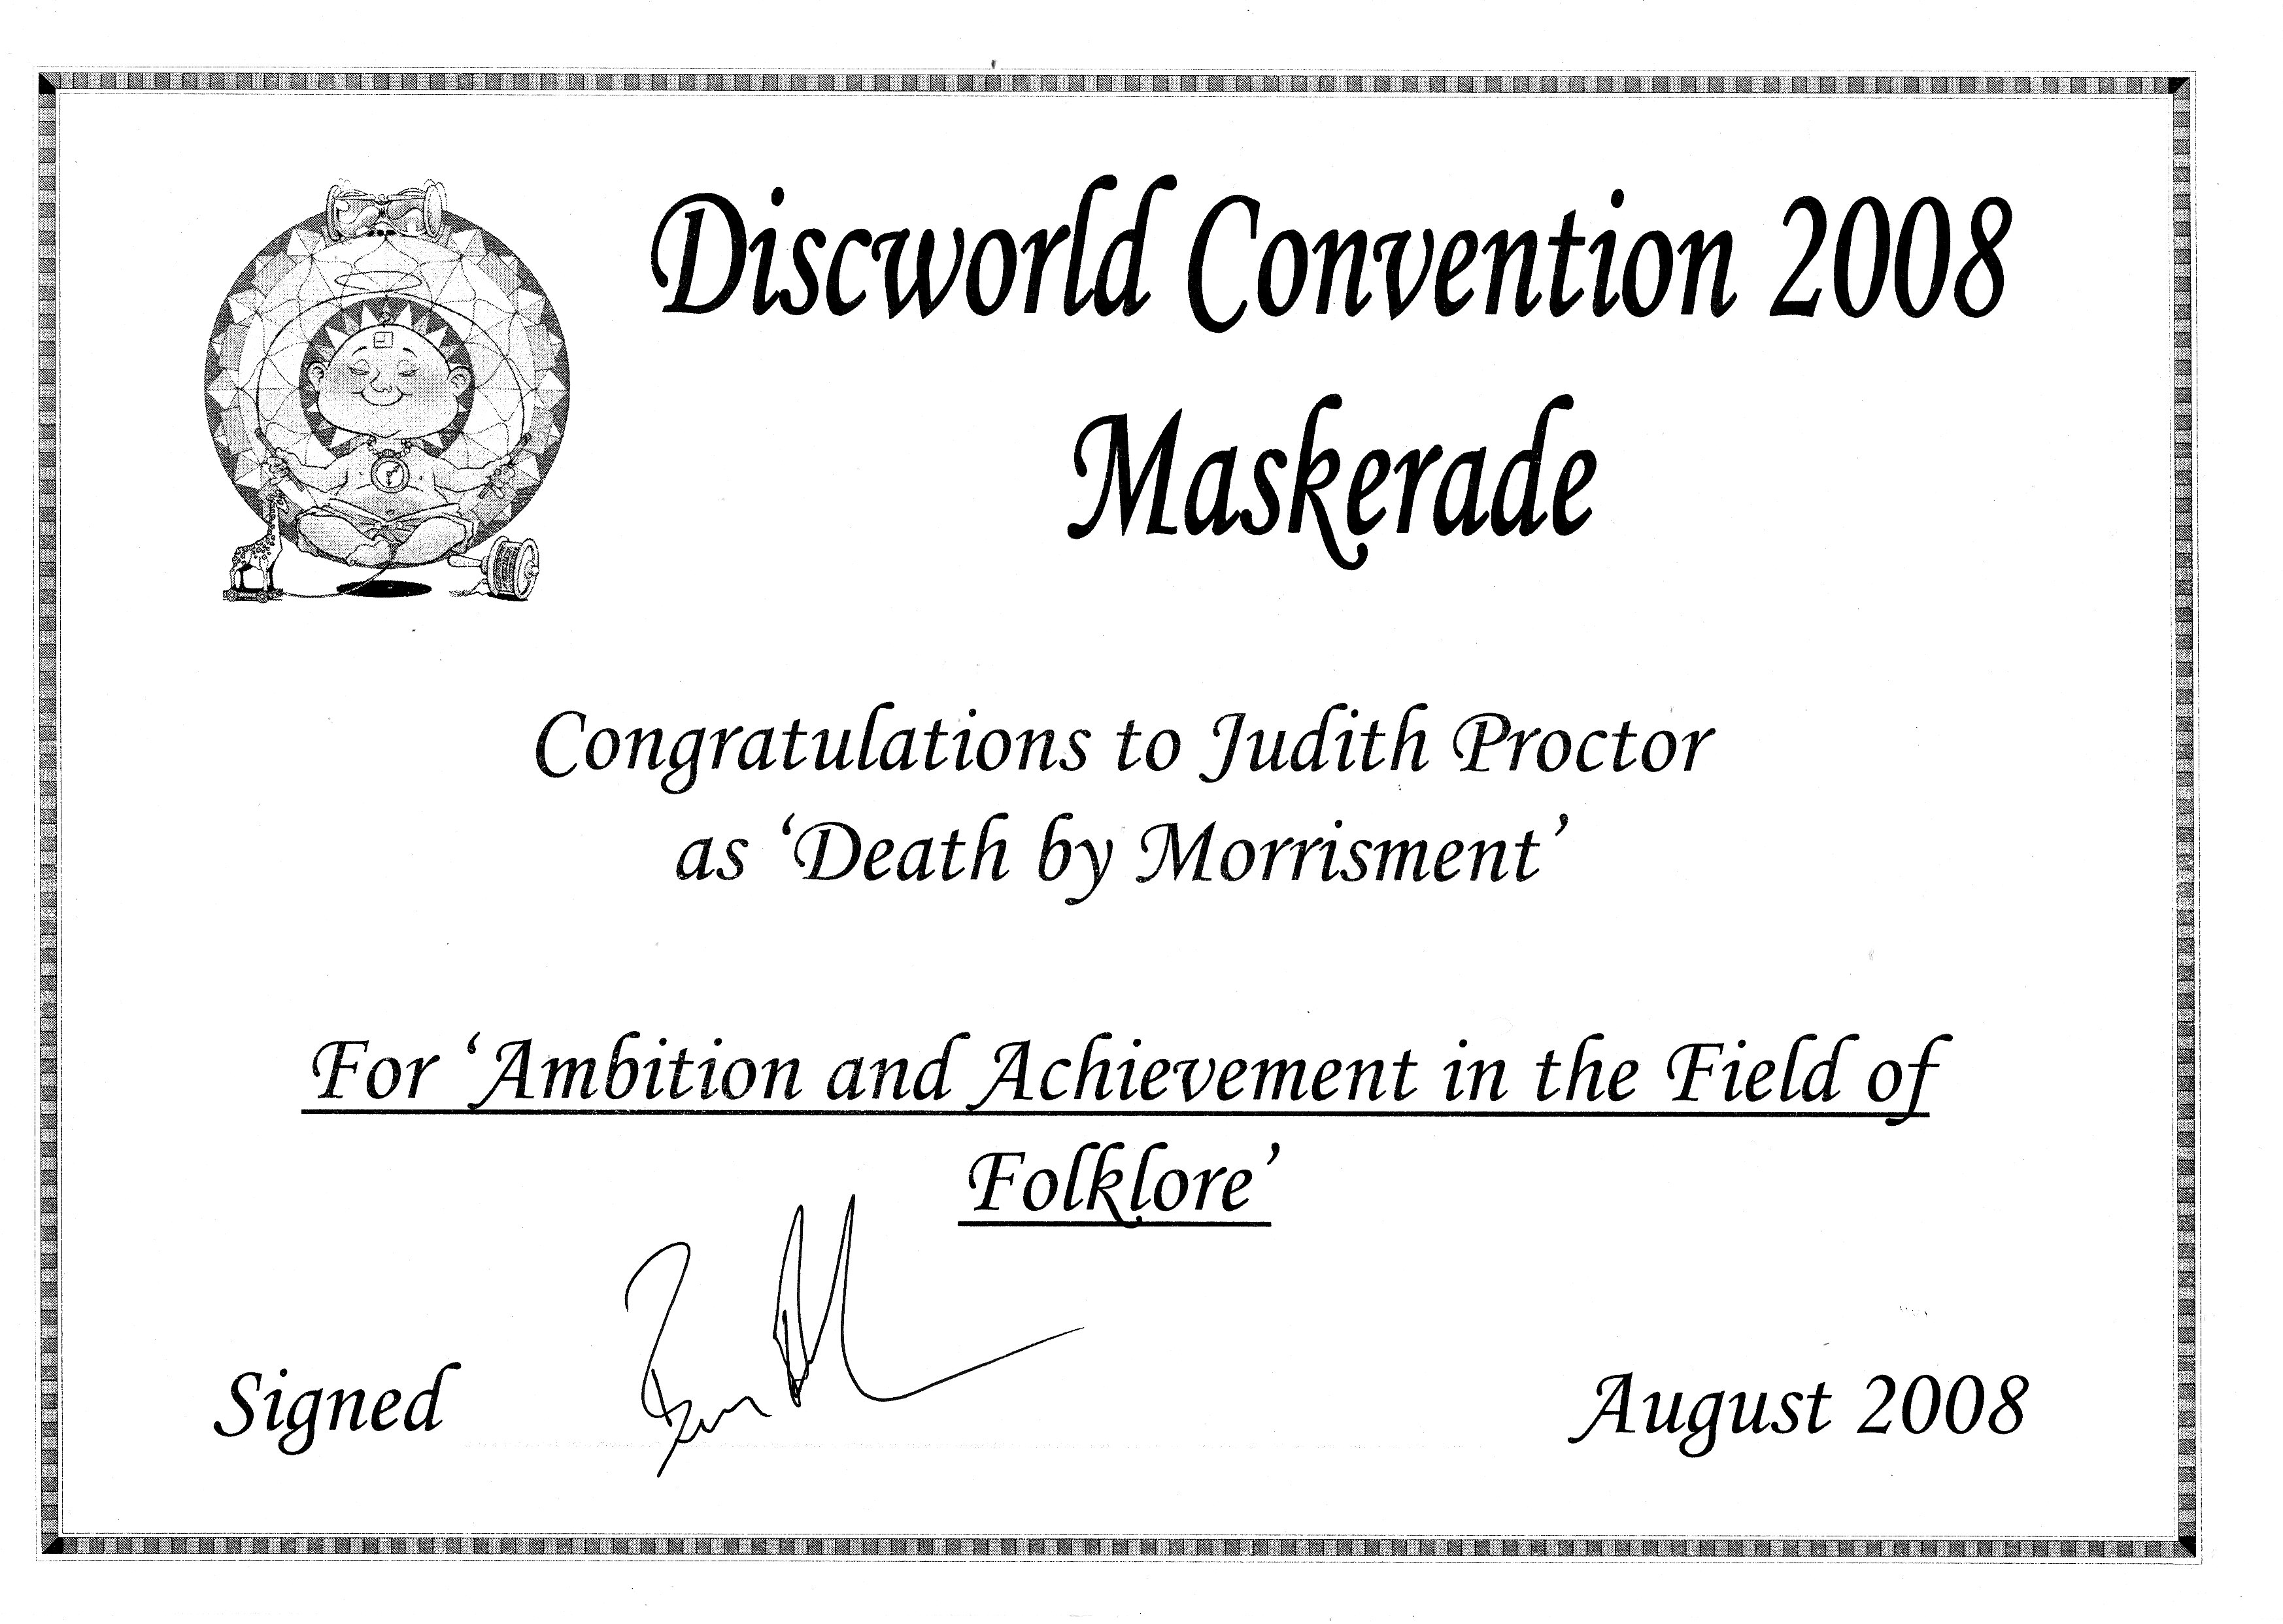 A certificate from the 2008 Discworld Convention presented to Judith Proctor for 'Ambition and Achievement in the Field of Folklore'